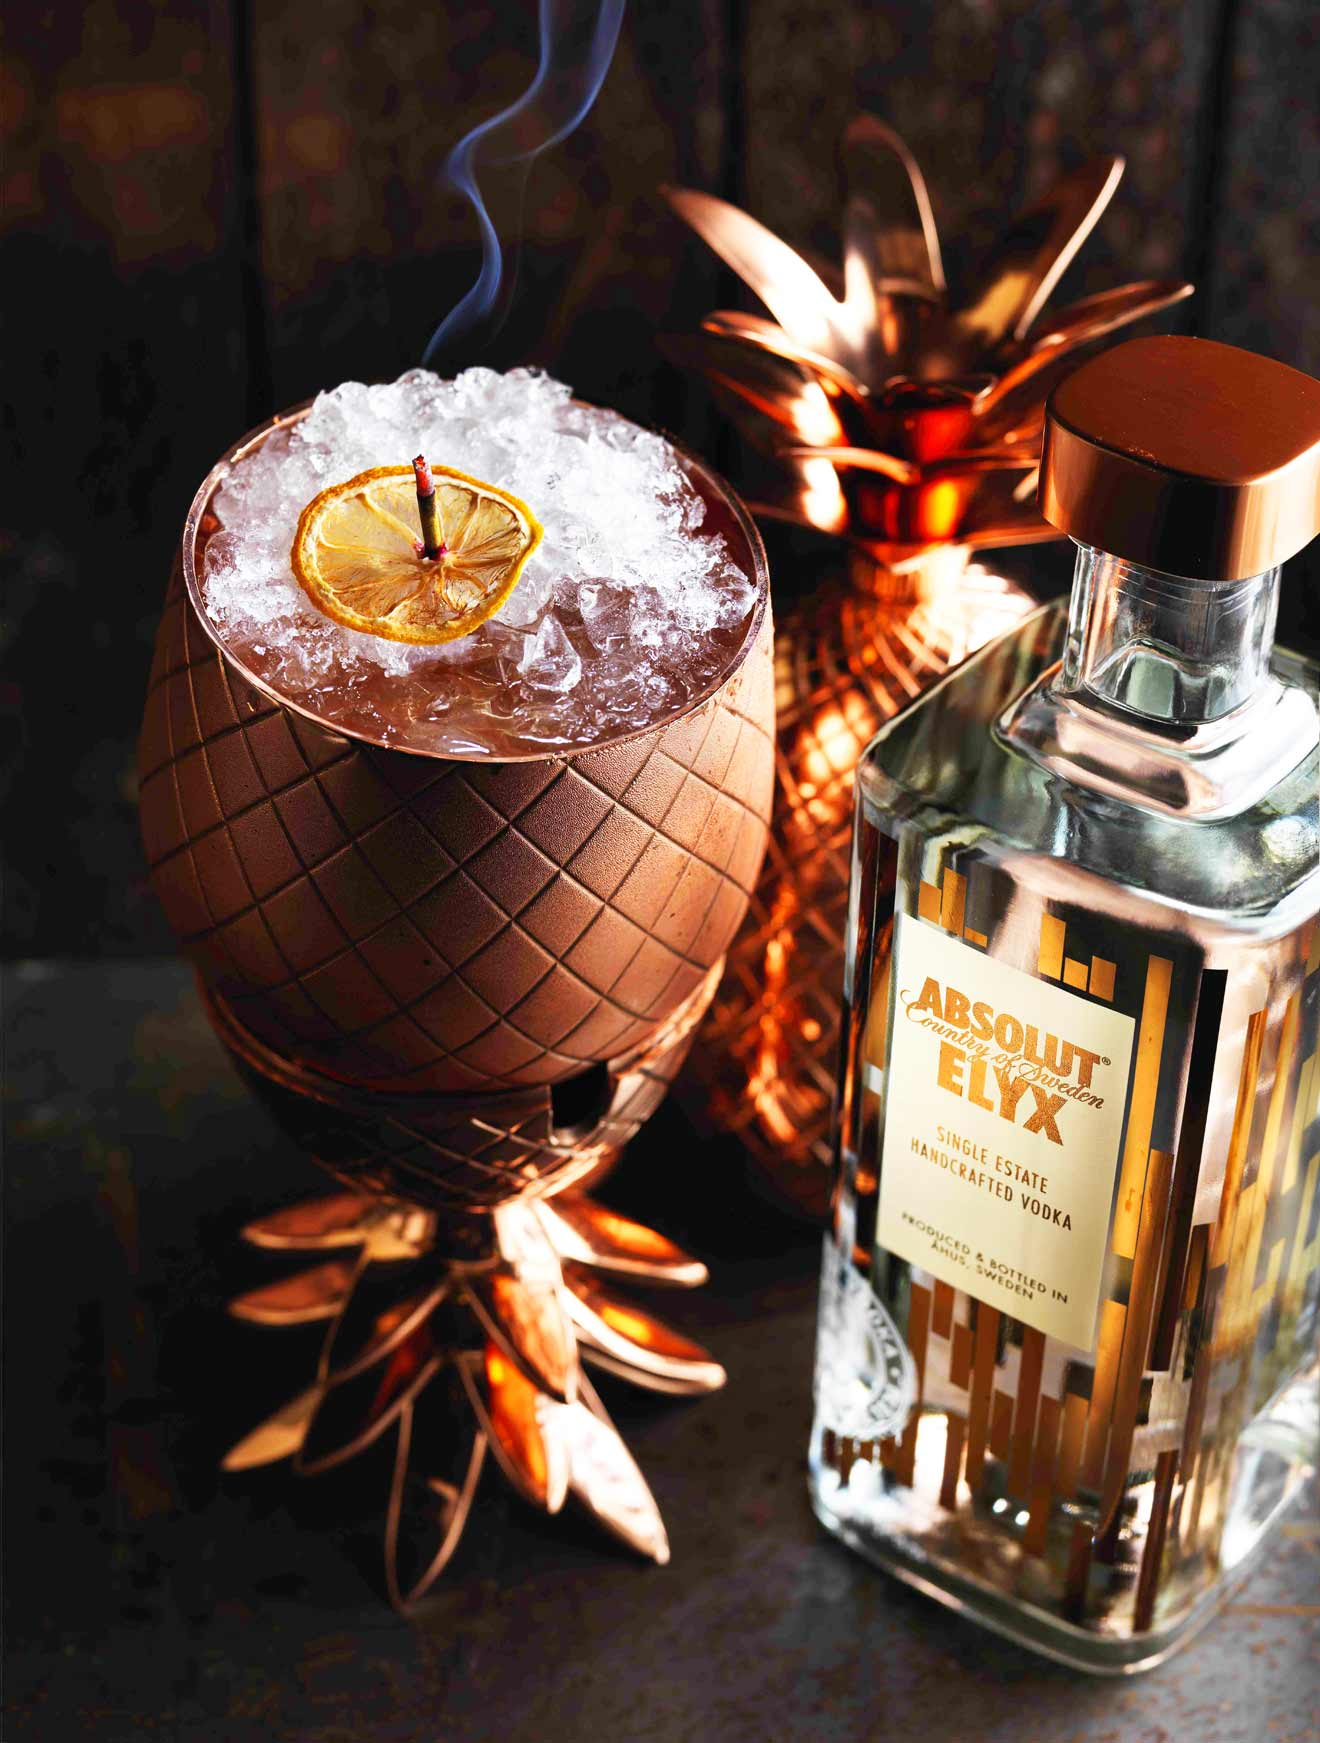 Absolut Elyx and the Pineapple of Hospitality